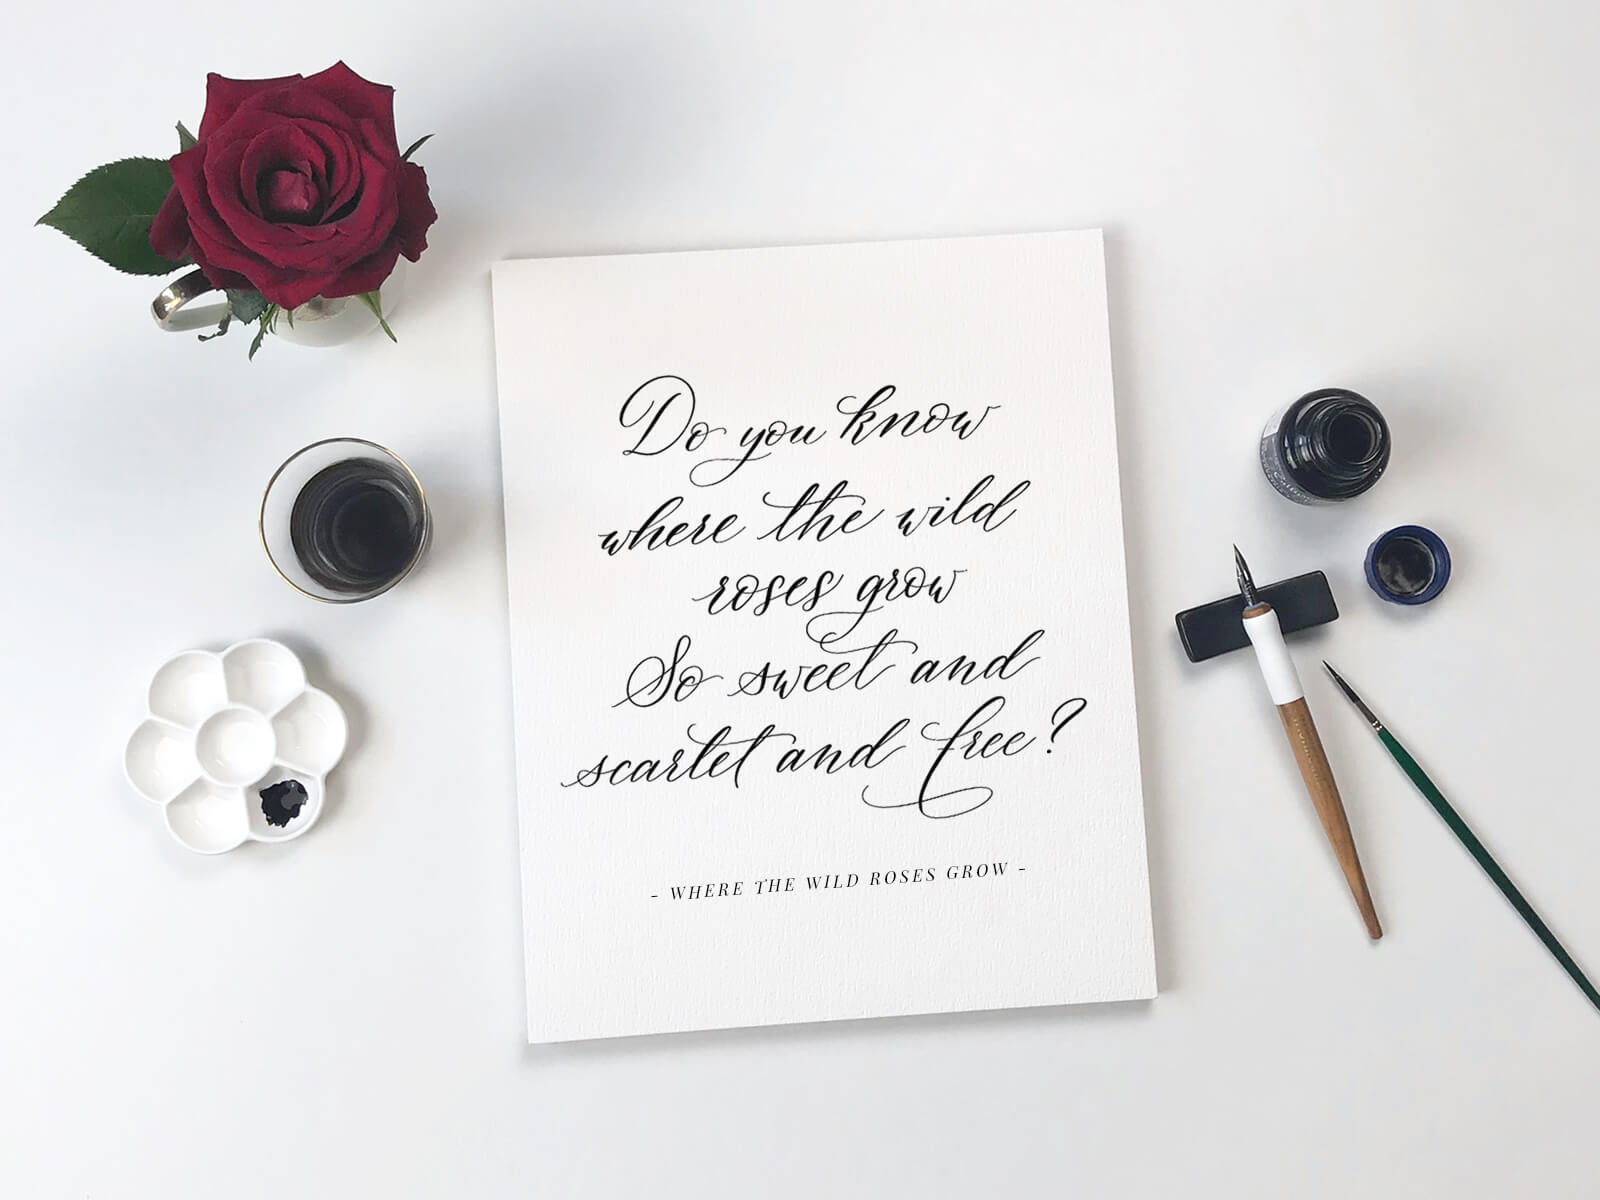 Kalligraphie mit Songtext von Nick Cave: Do you know where the wild roses grow?